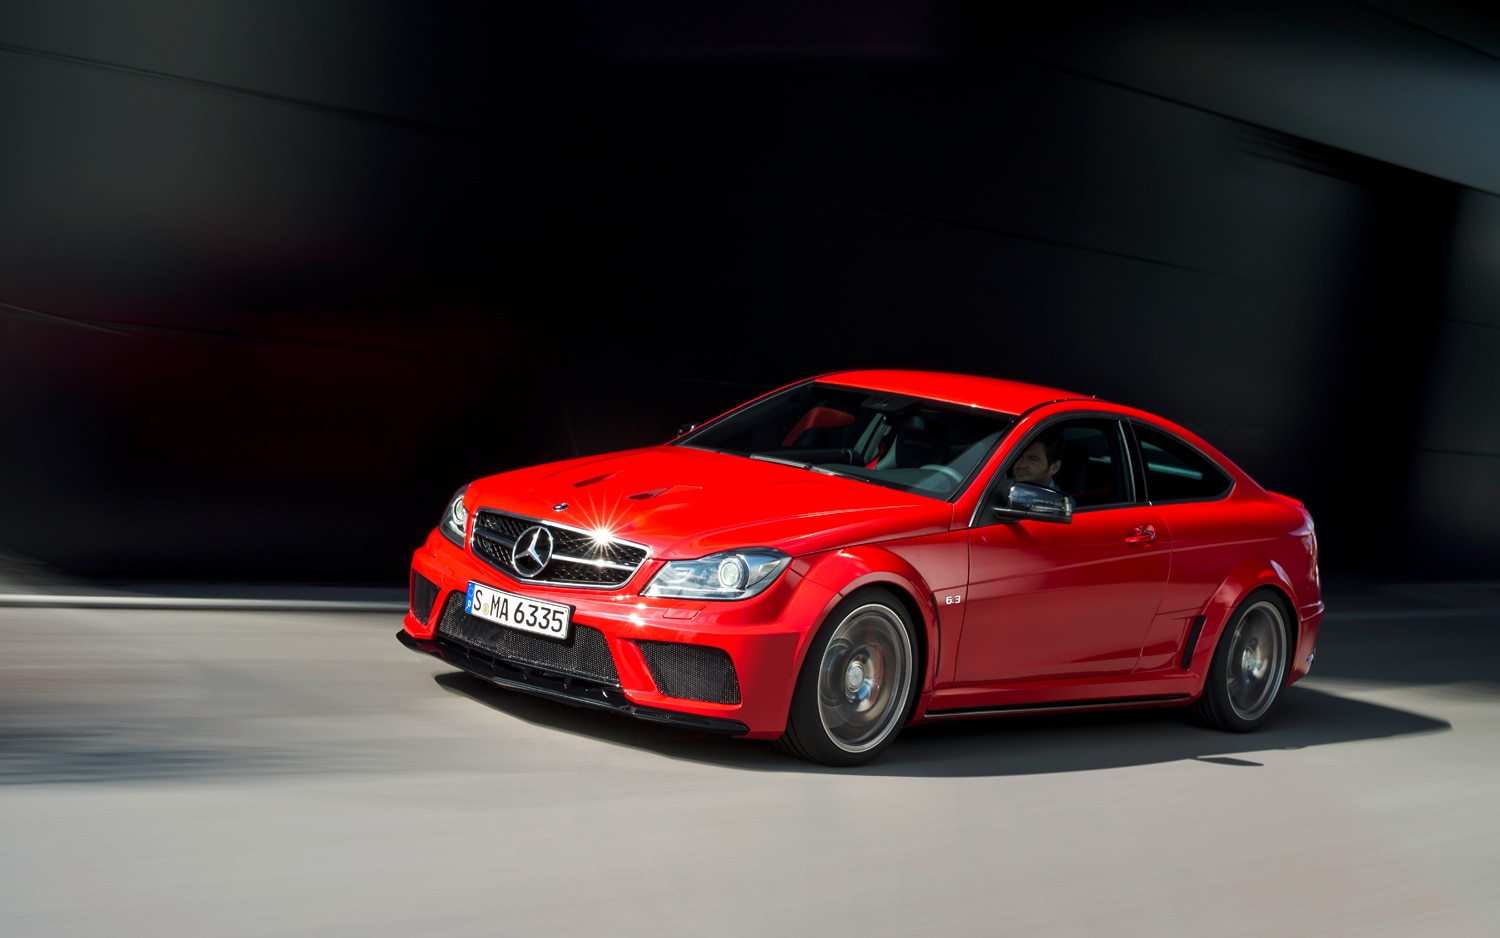 2012 Mercedes Benz C63 AMG Coupe Front Left View1